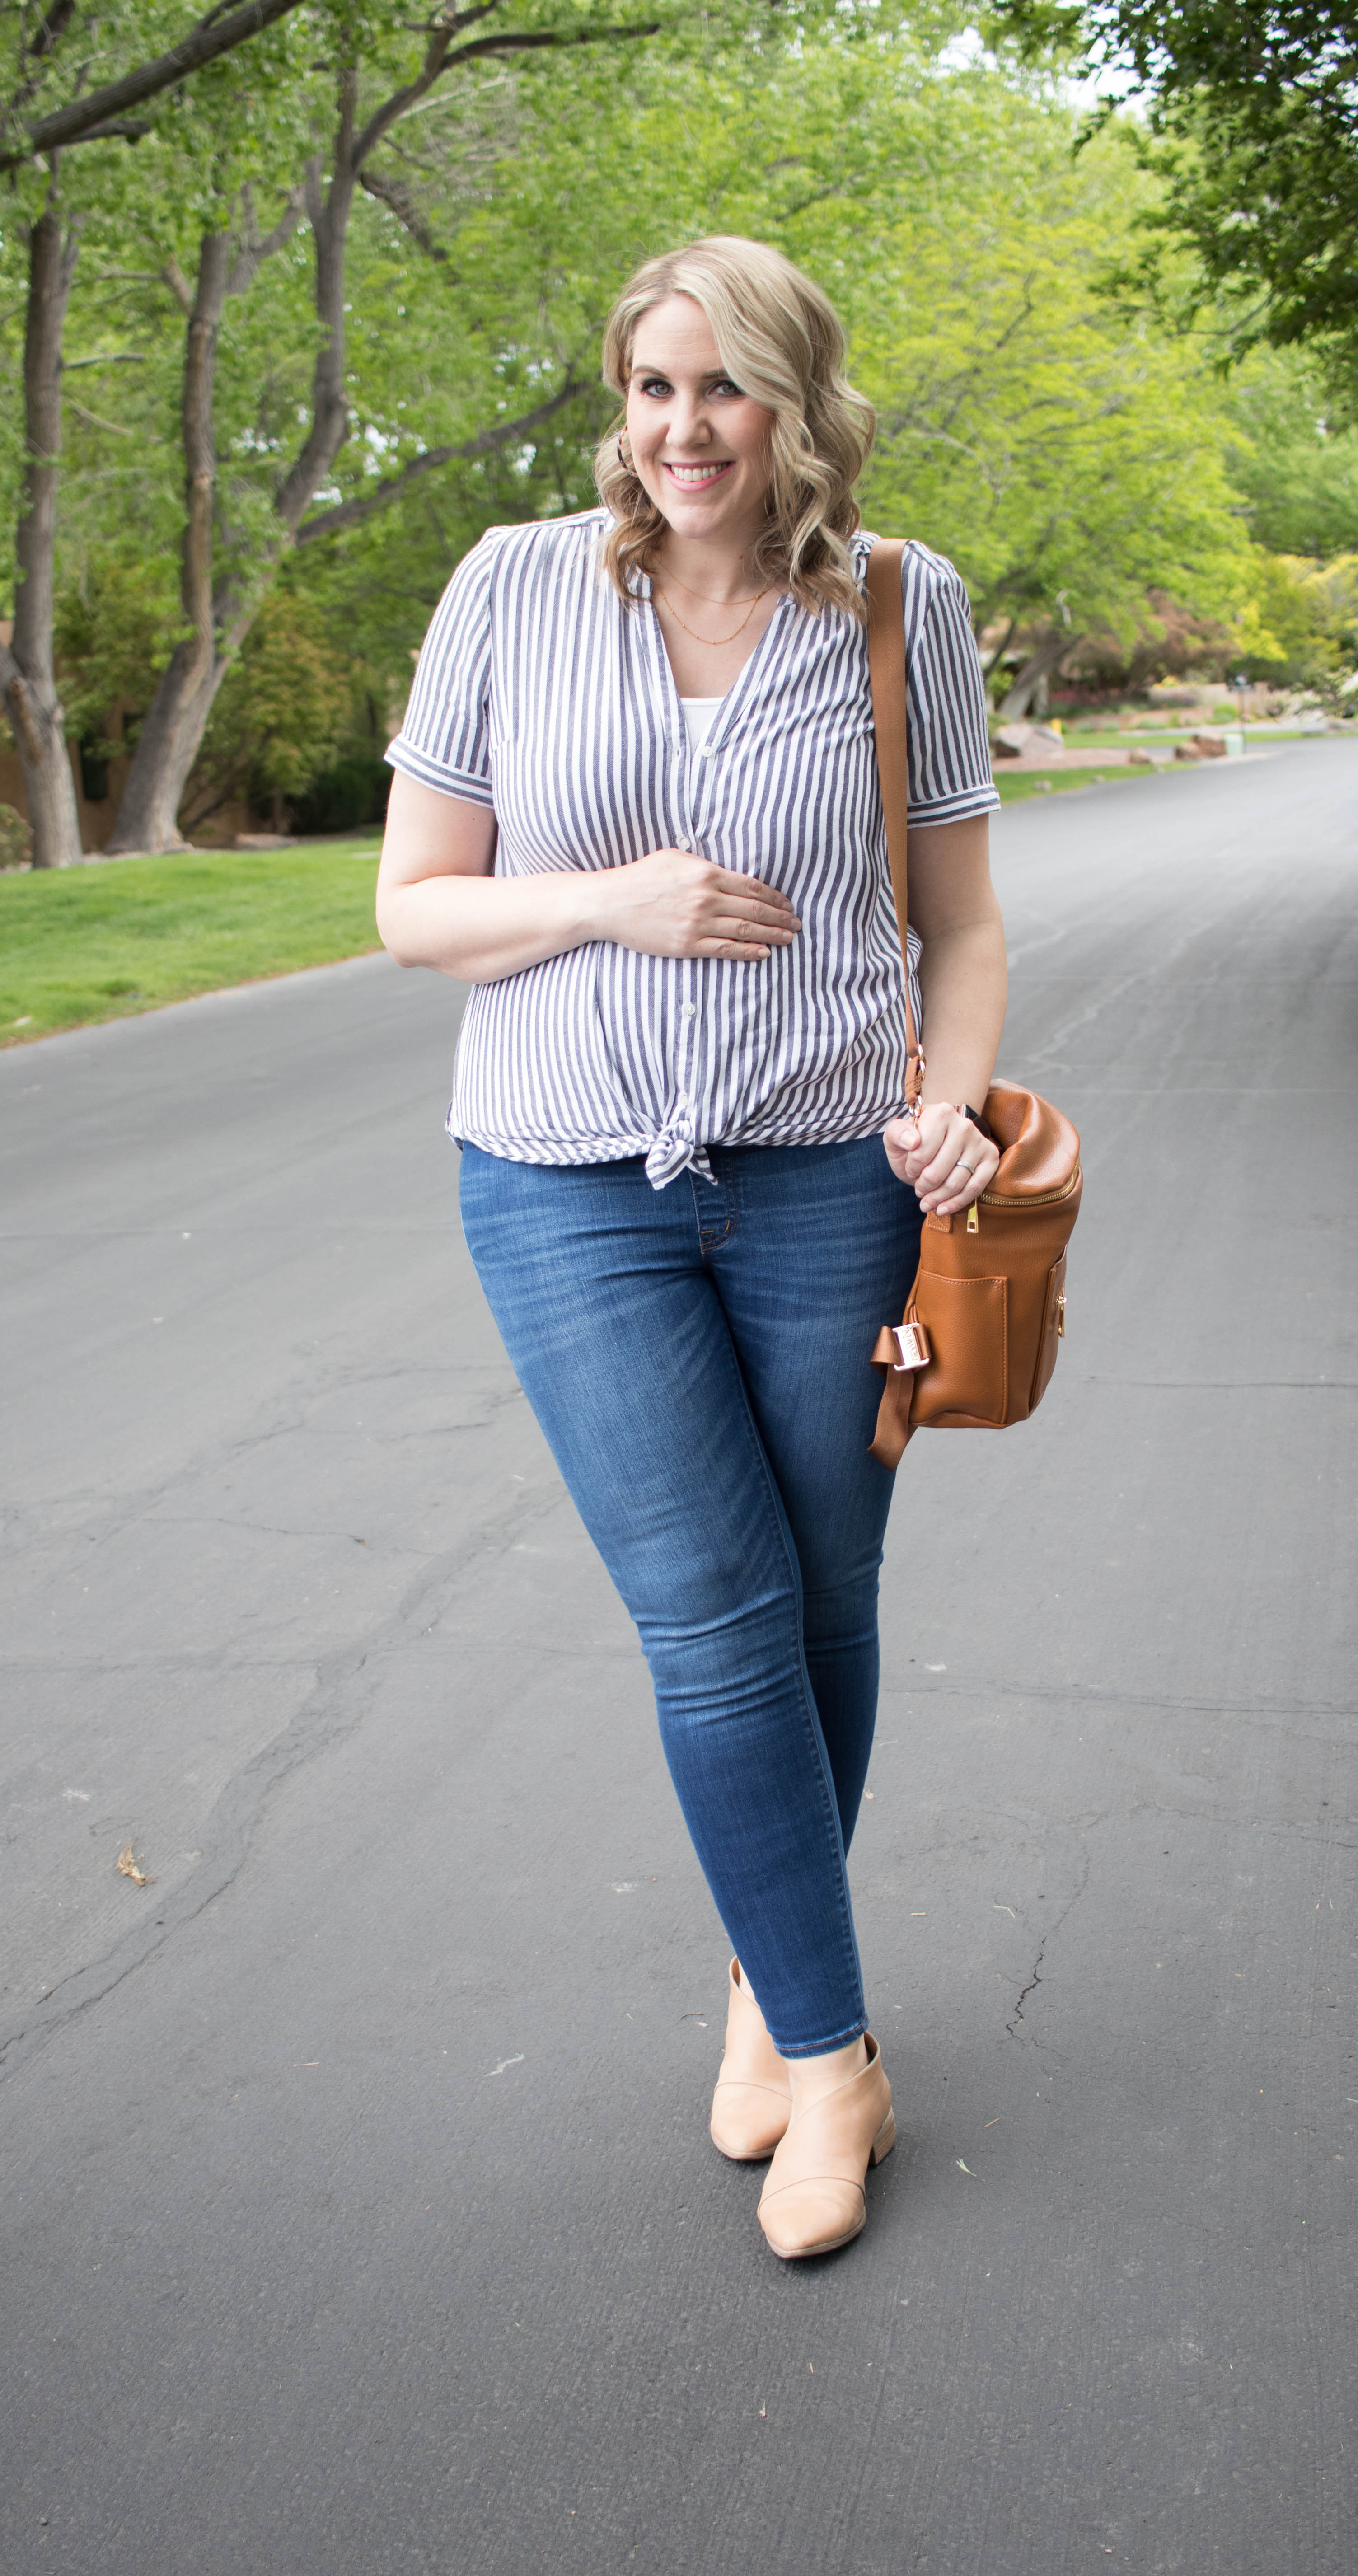 my new favorite maternity jeans #maternityjeans #maternitystyle #fawndesign